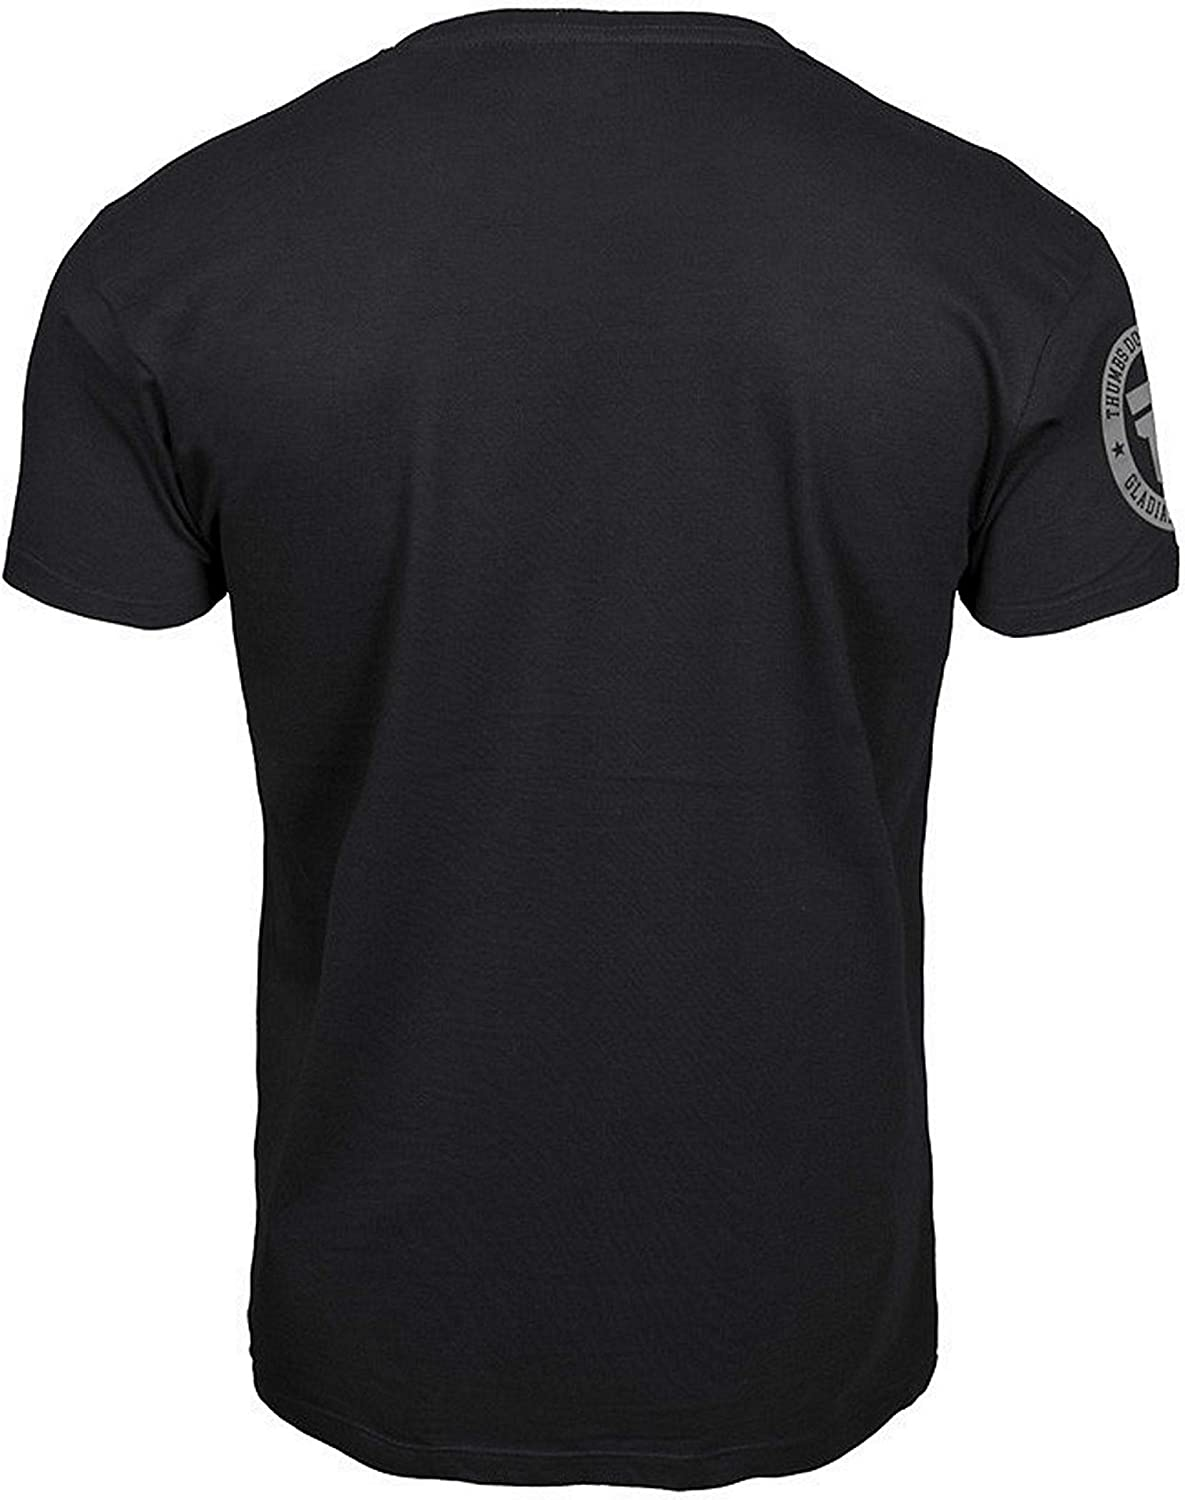 Thumbs Down Boxing Gym T-Shirt para Hombre Training Artes Marciales Boxe Boxe Gym Bronx Heavy Weight